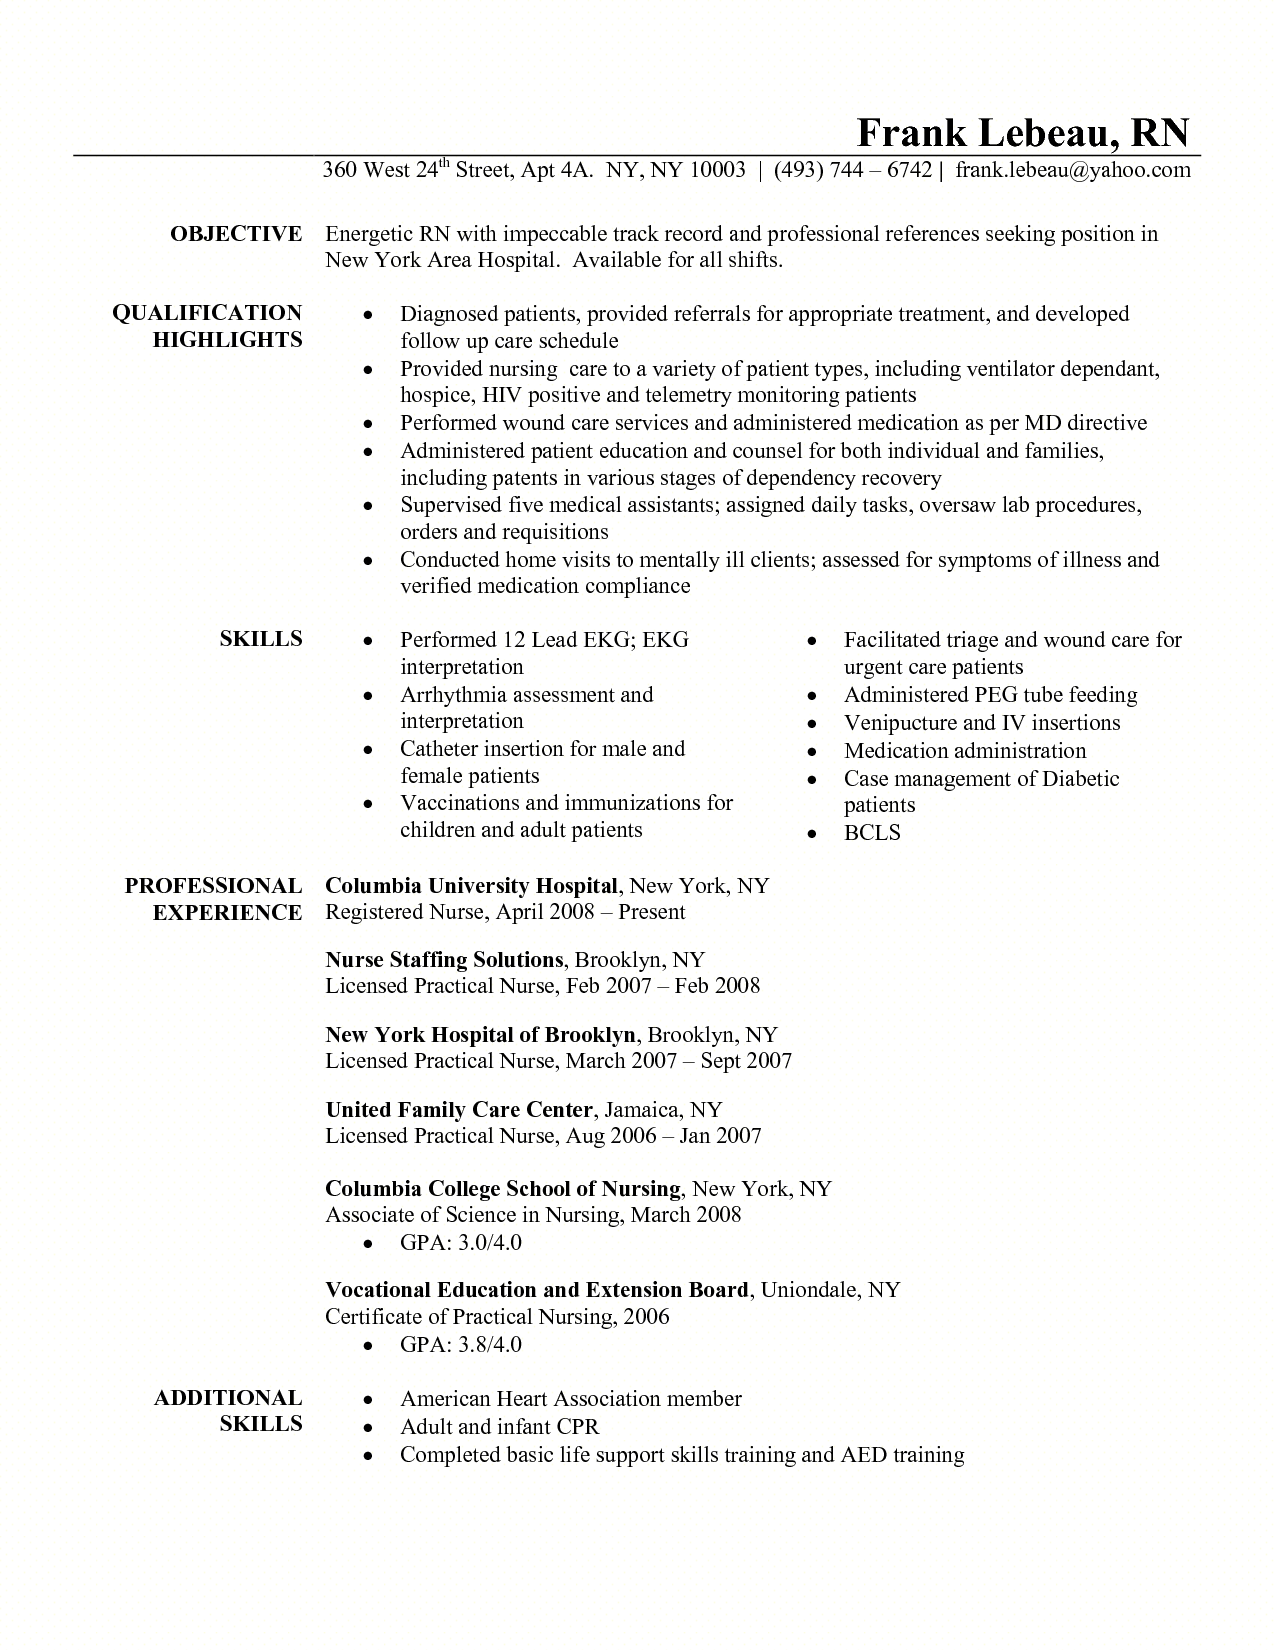 Resume For Triage Nurse o